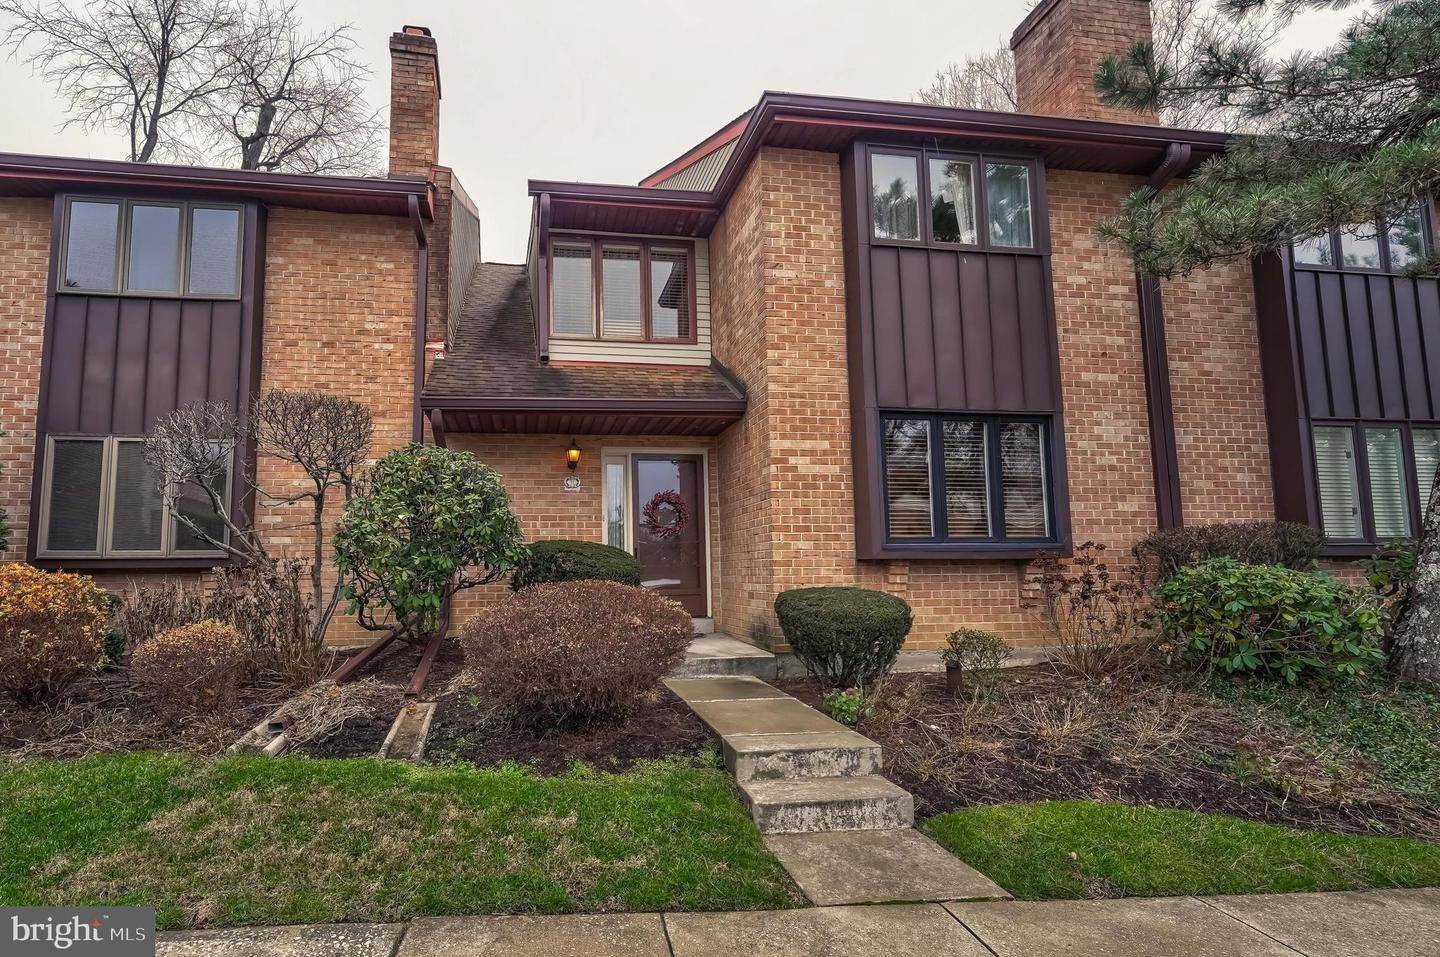 Condominiums for Sale at 1747 WEST CHESTER PIKE #11 Havertown, Pennsylvania 19083 United States